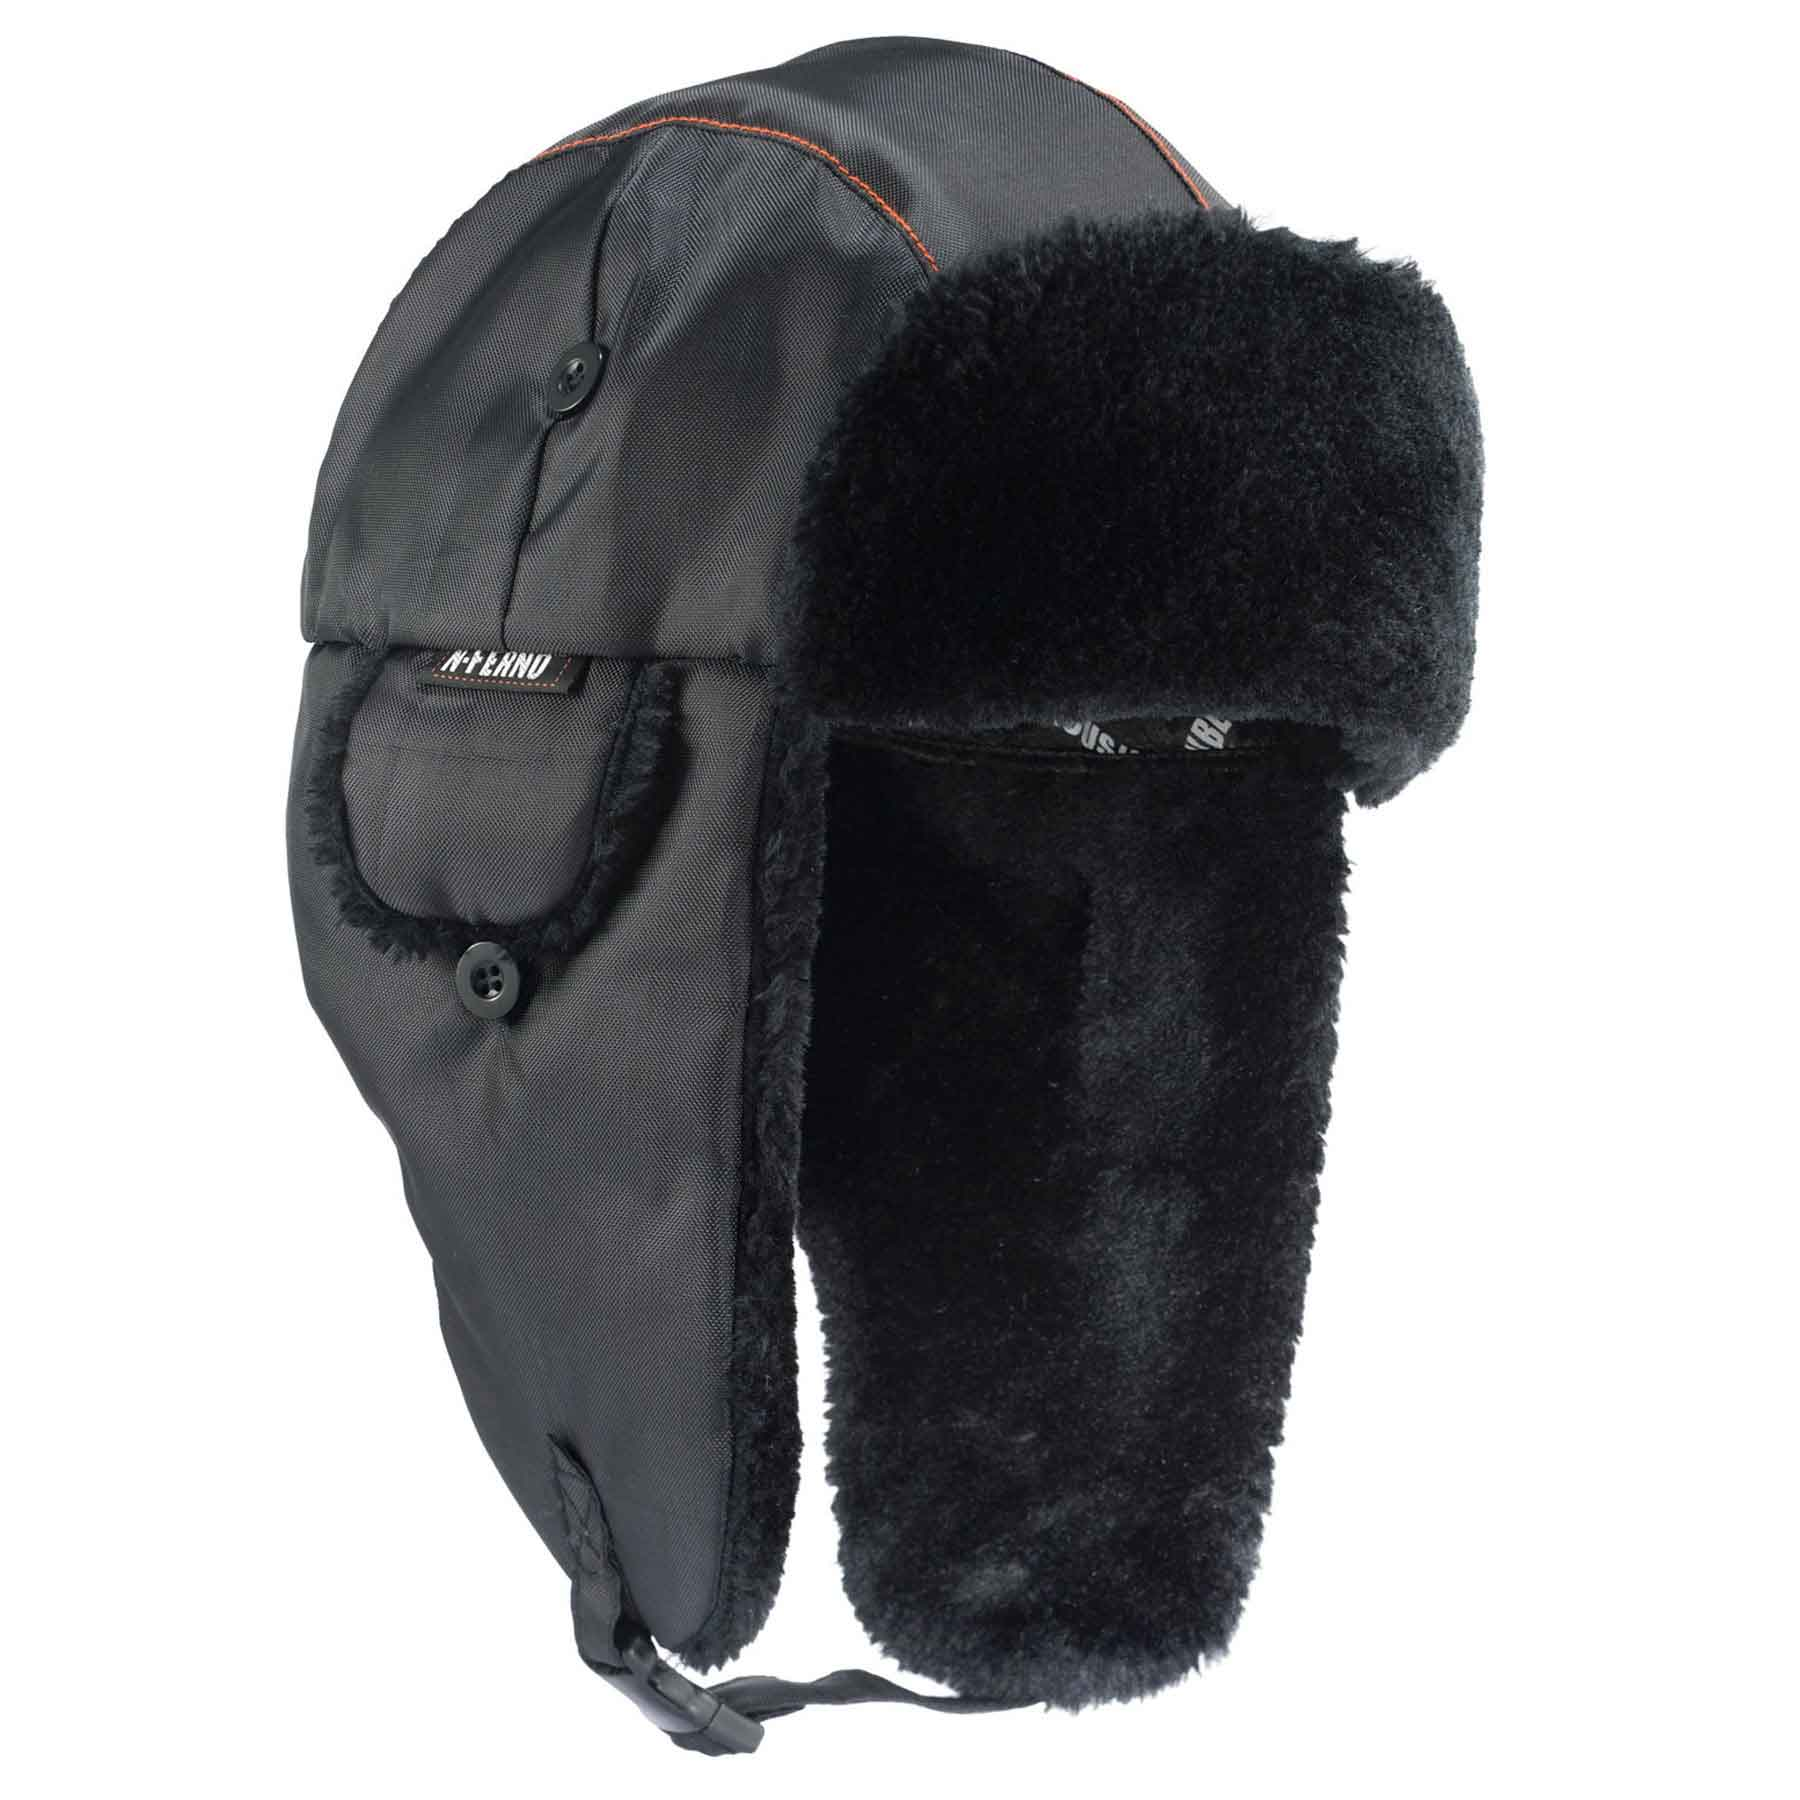 N-Ferno 6802 Thermal Winter Trapper Hat, Black, Large/X-Large